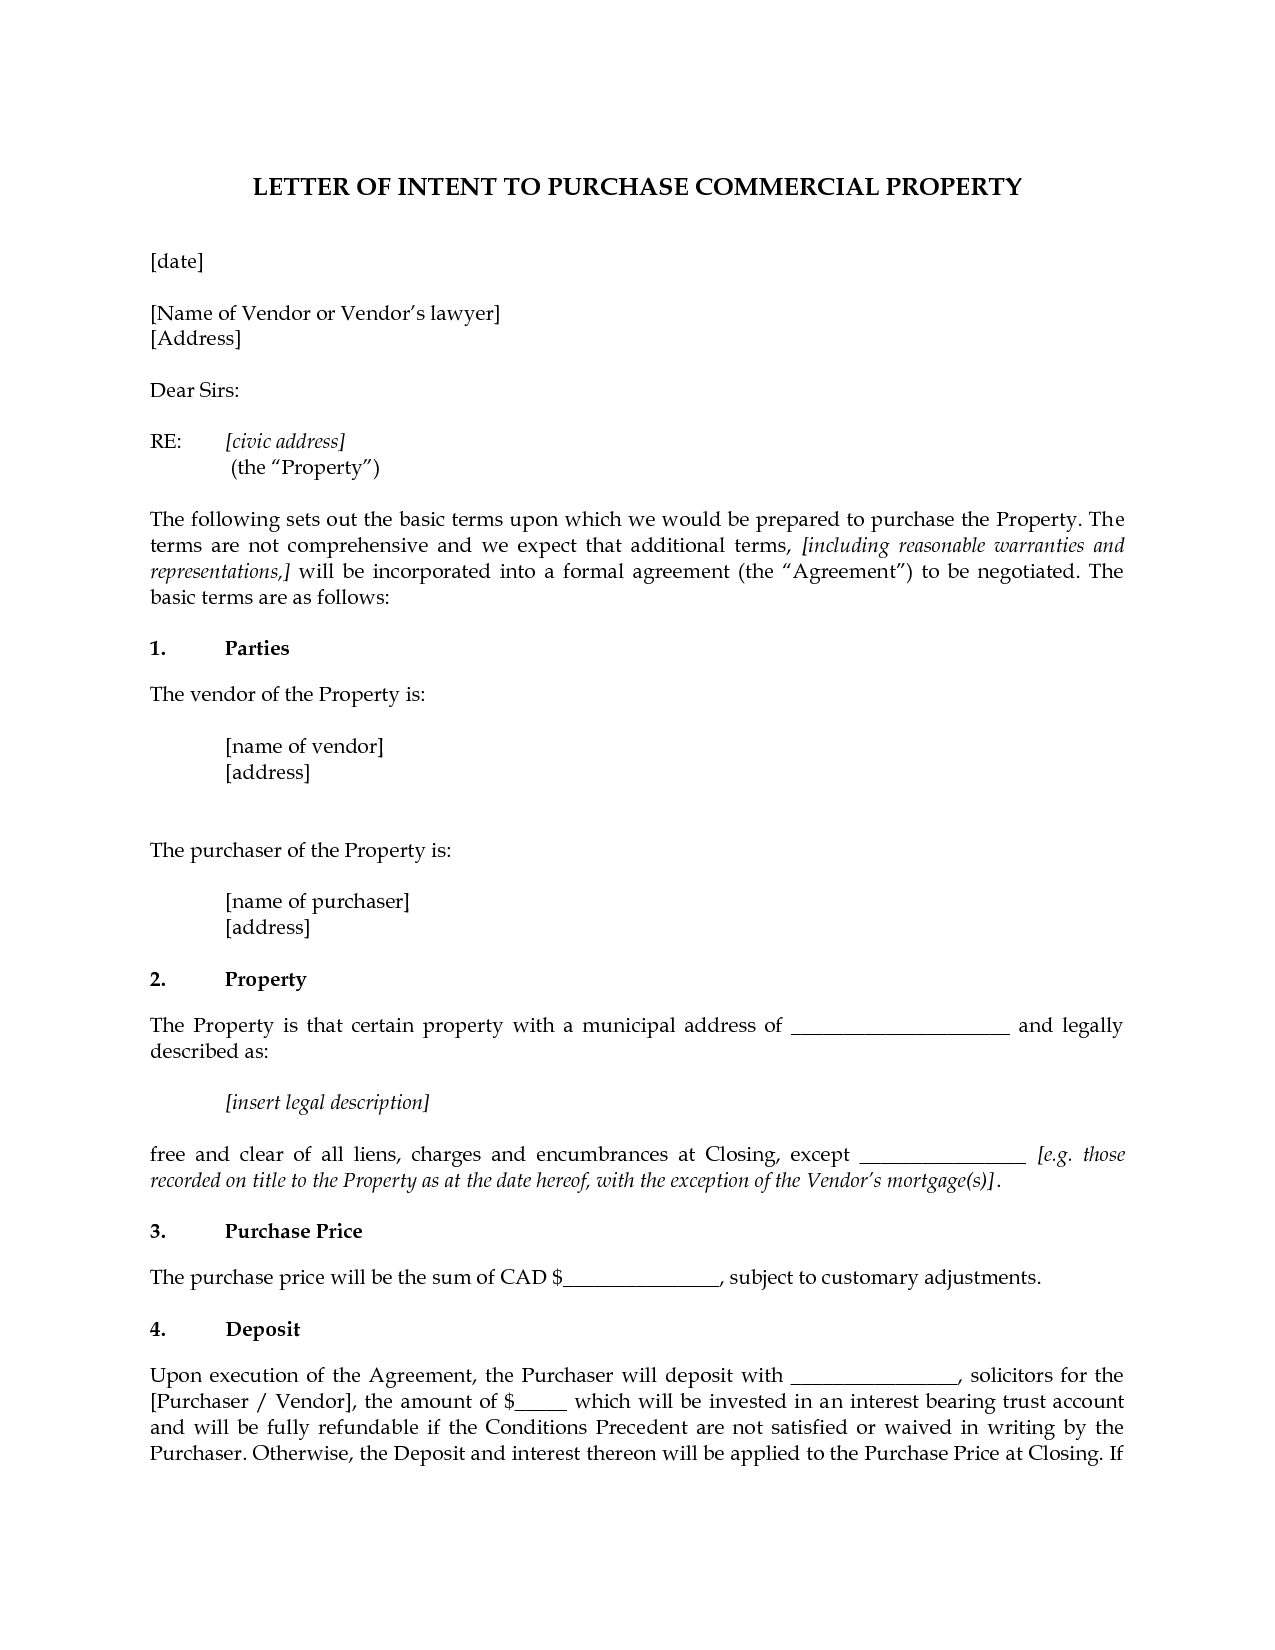 Commercial Lease Letter Of Intent Template - Mercial Real Estate Lease Letter Intent Template Purchase